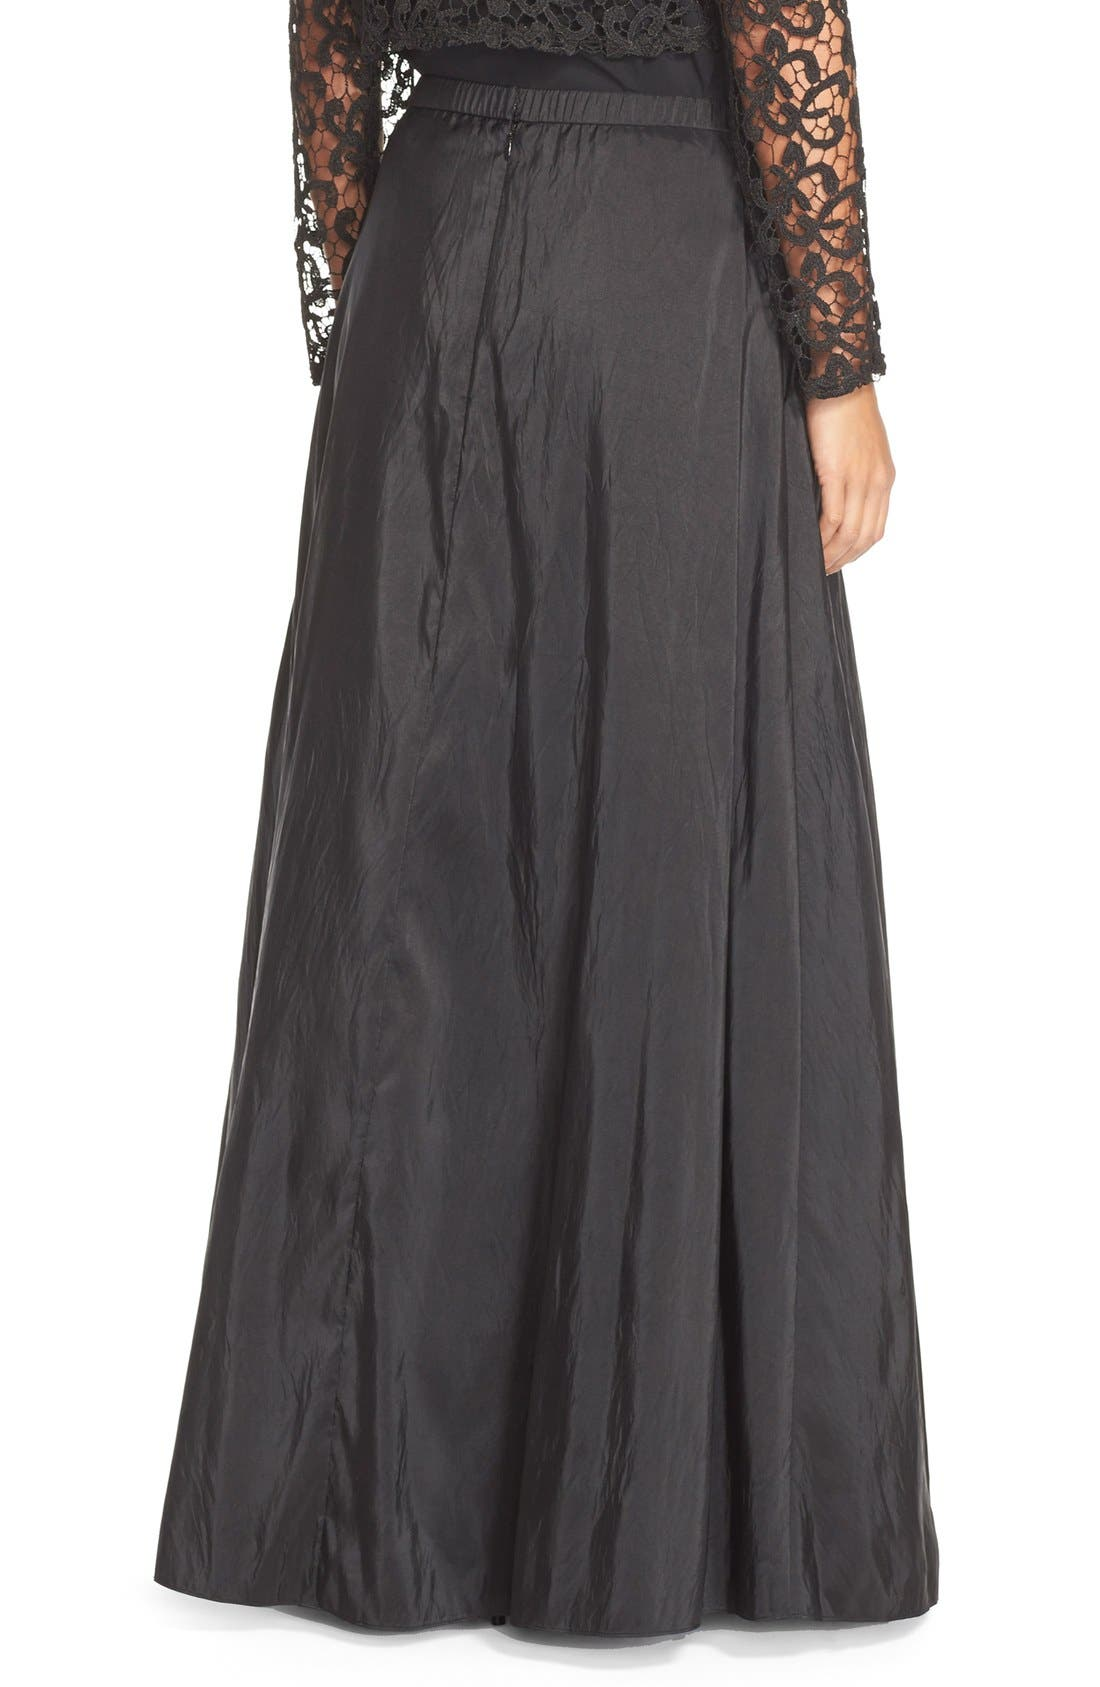 Taffeta Ball Skirt,                             Alternate thumbnail 2, color,                             Black